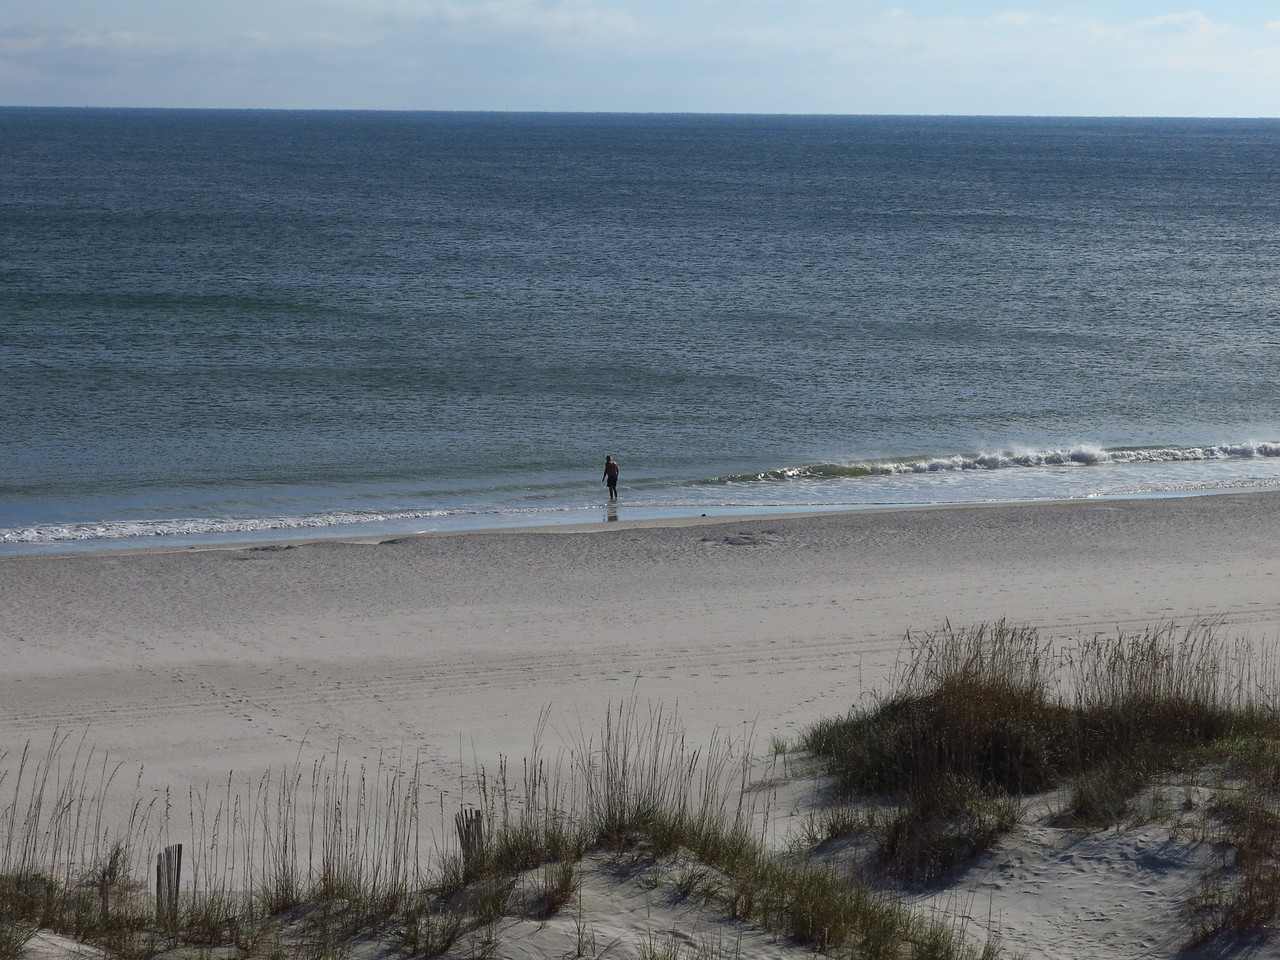 Back at the hotel on the beach on Thursday afternoon, November 7th